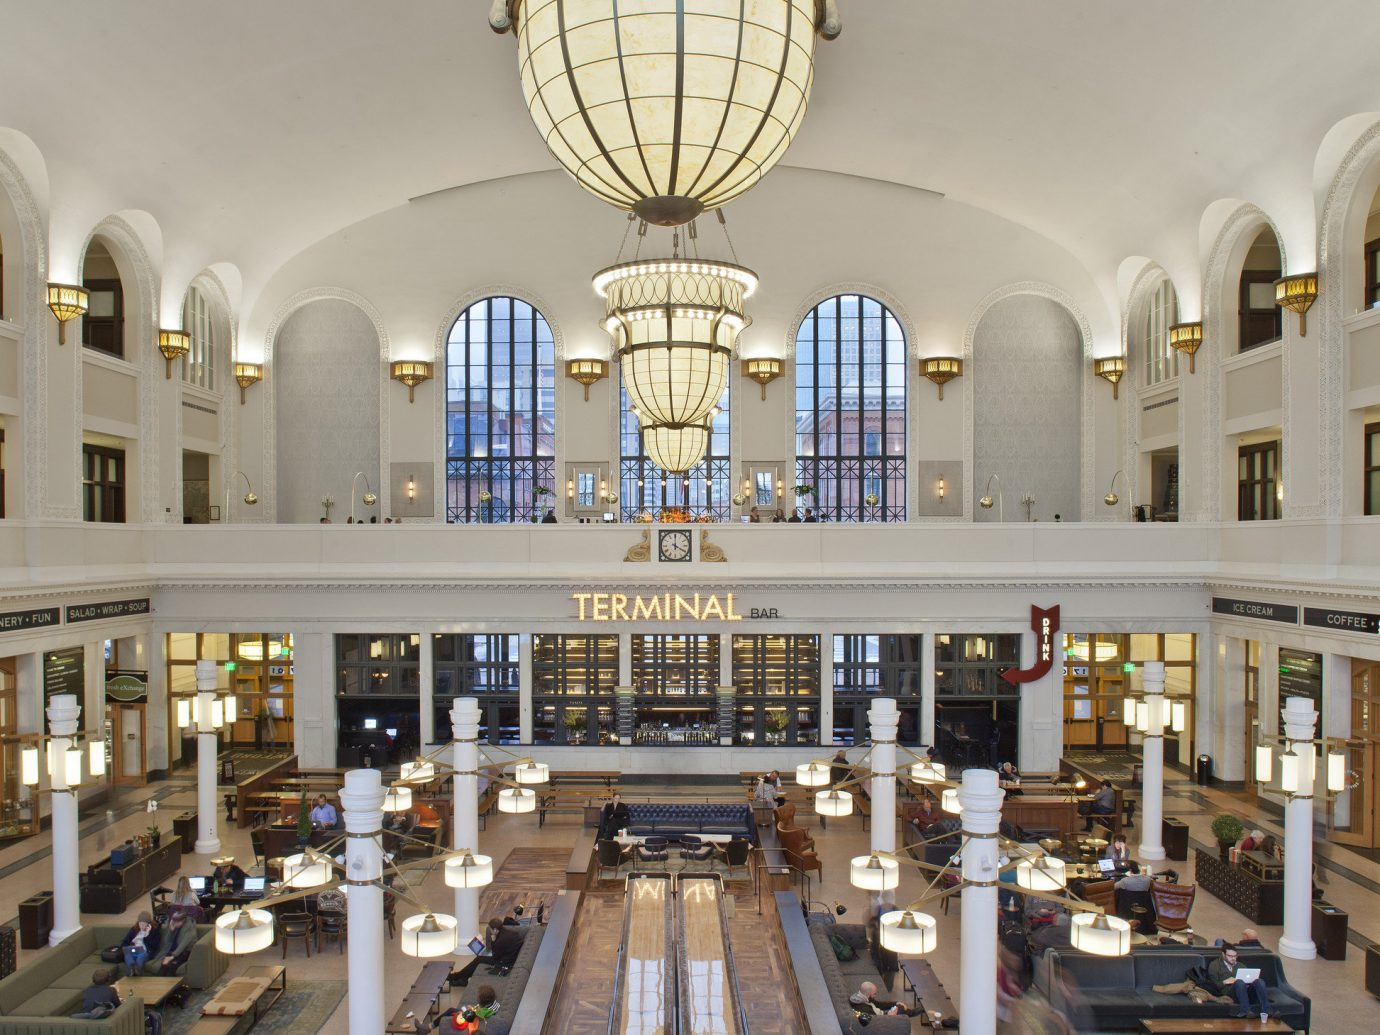 Trip Ideas Weekend Getaways Winter building indoor Lobby institution library interior design ceiling symmetry synagogue counter arcade estate shopping mall hall